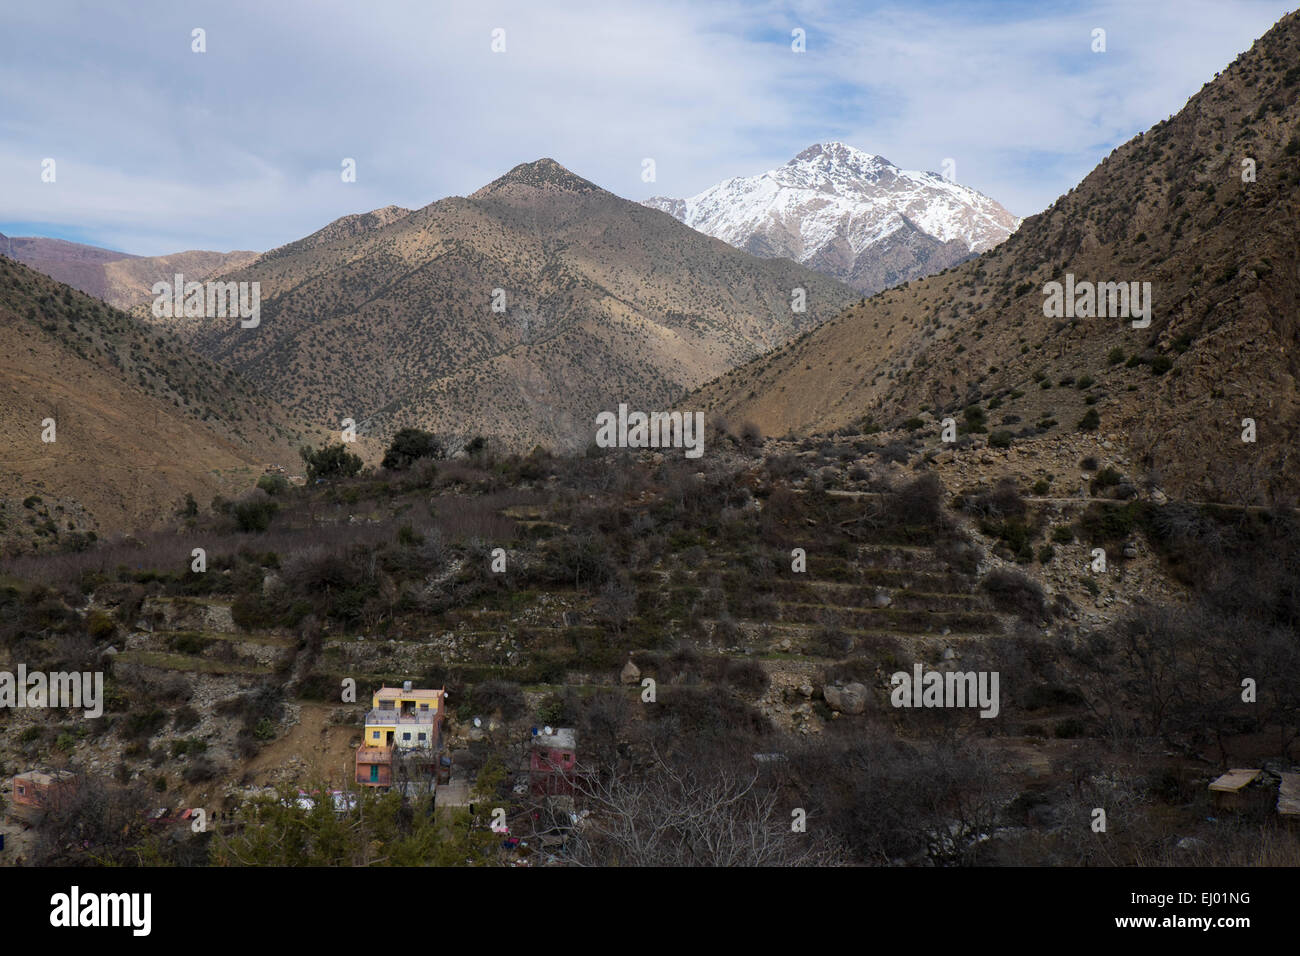 Tourists having lunch, Setti Fatma village, Ourika Valley, Atlas Mountains, Morocco, North Africa Stock Photo